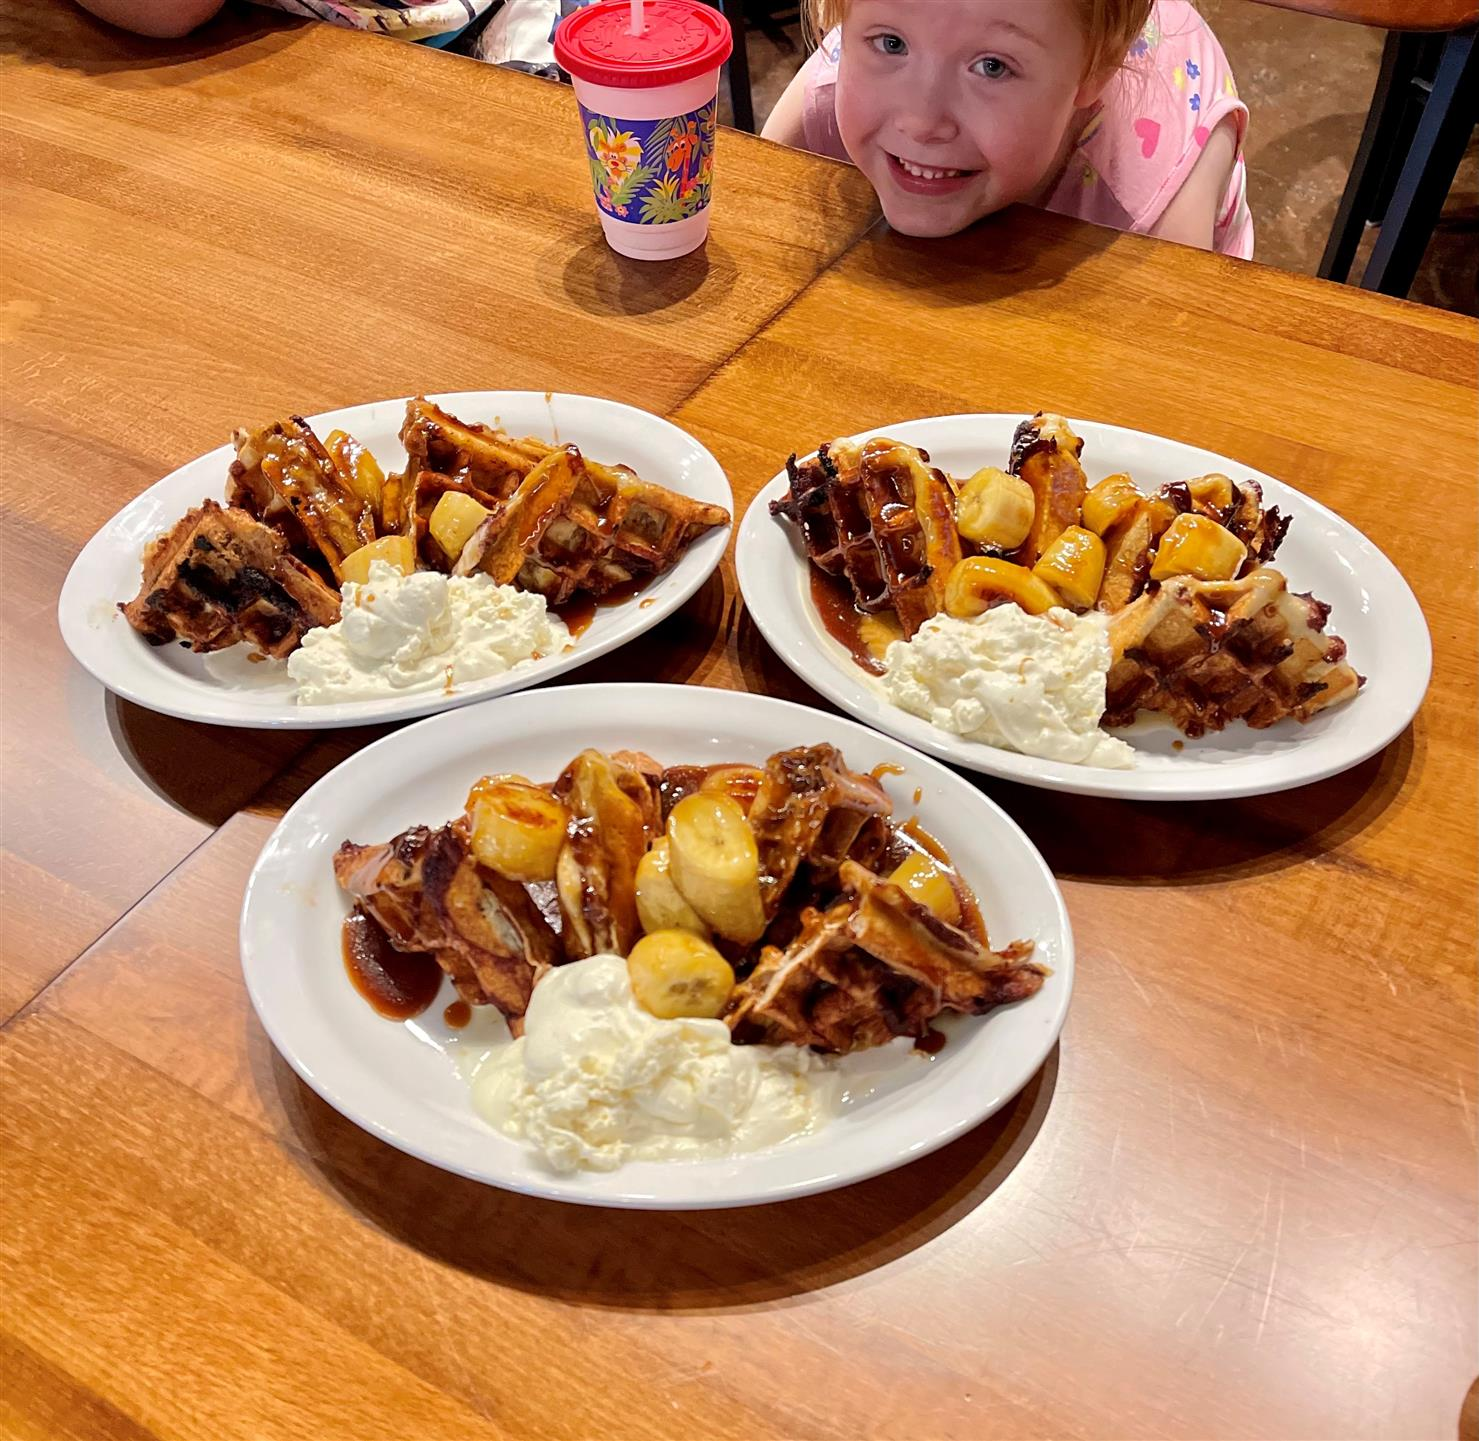 three plates of waffles with bananas and a little girl smiling